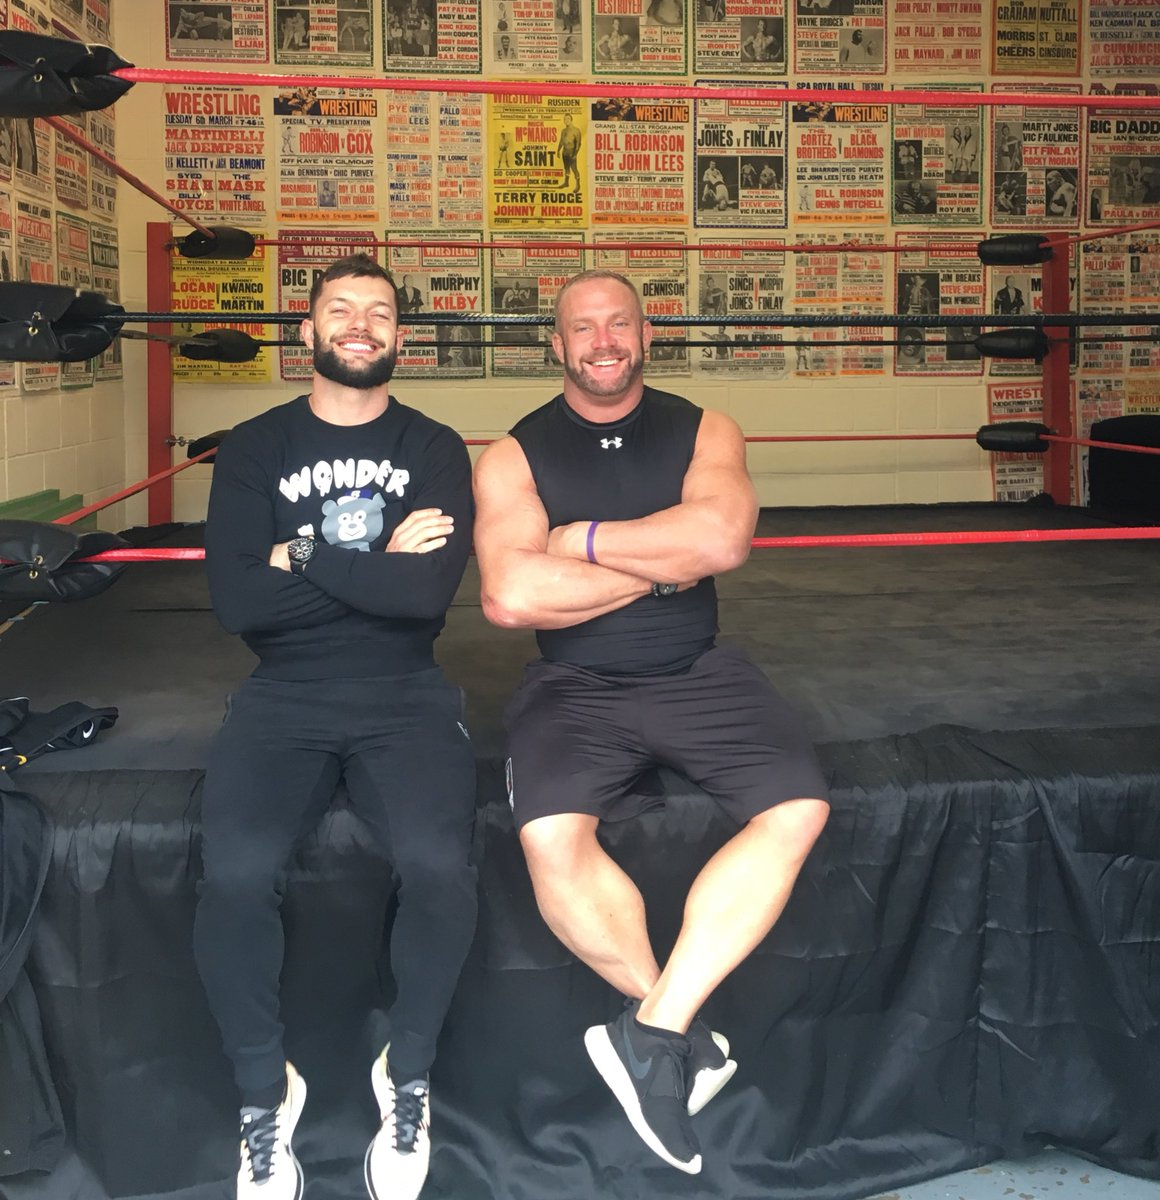 A real treat to play host to my old pal @FinnBalor today....so many great memories https://t.co/ti1LzqKsky